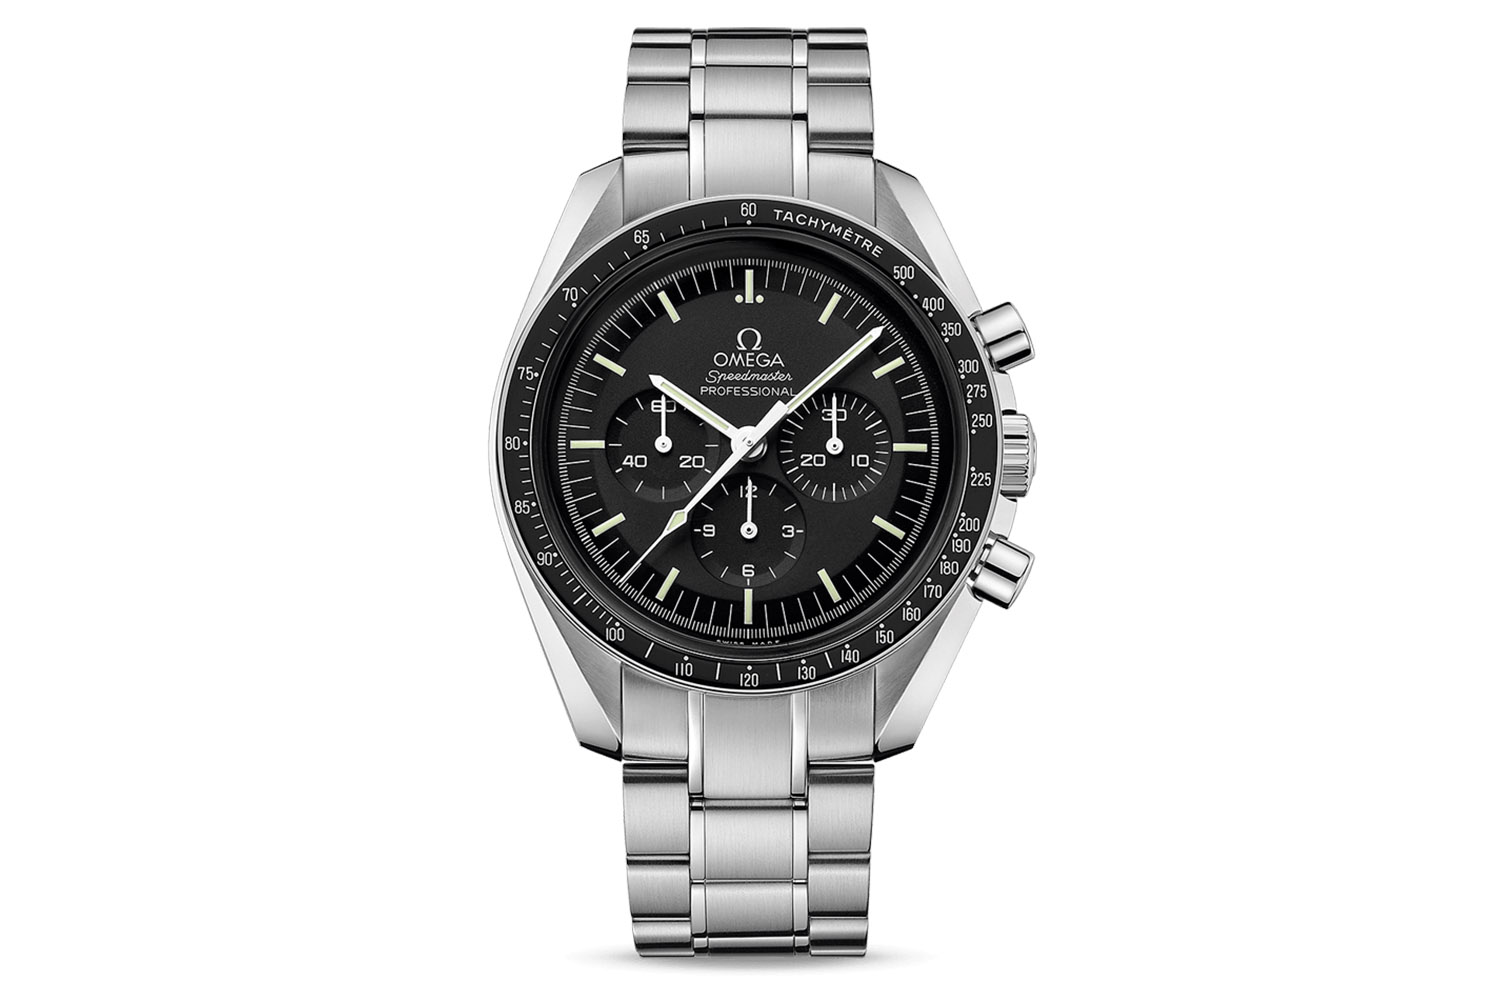 Omega Speedmaster Professional 3570.50 modern version 1997 calibre 1861